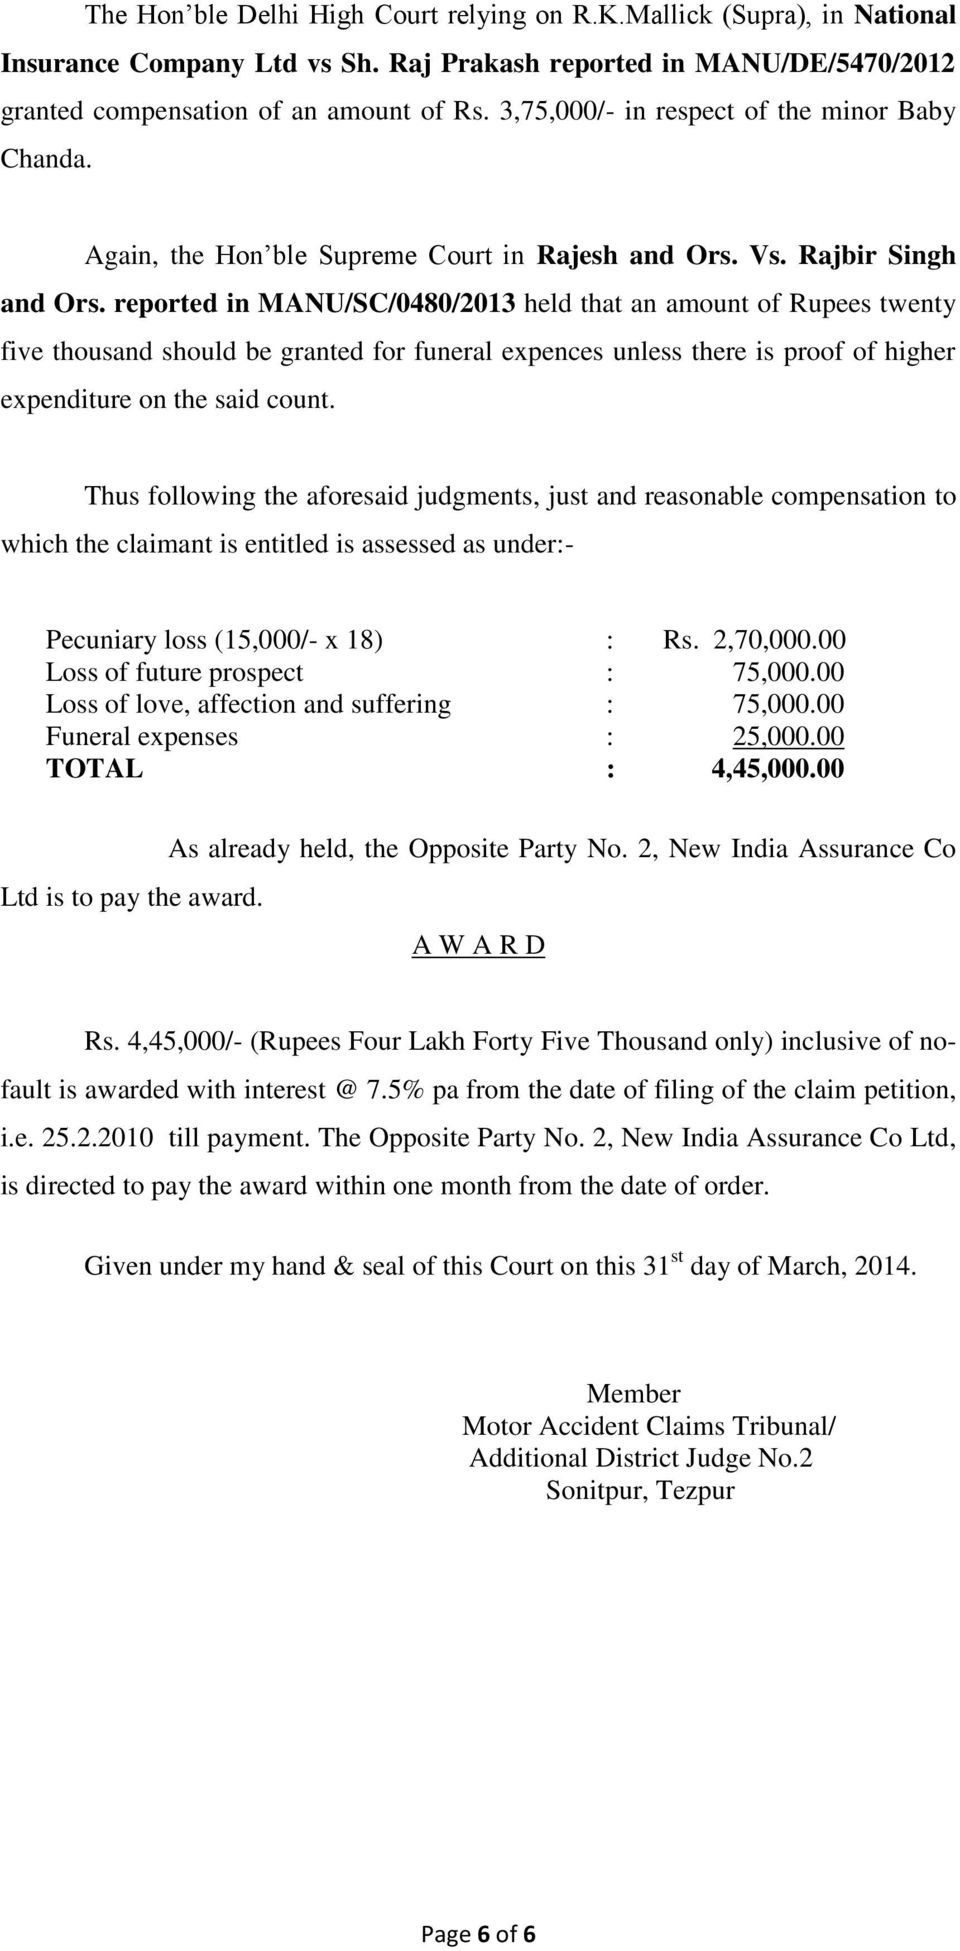 reported in MANU/SC/0480/2013 held that an amount of Rupees twenty five thousand should be granted for funeral expences unless there is proof of higher expenditure on the said count.